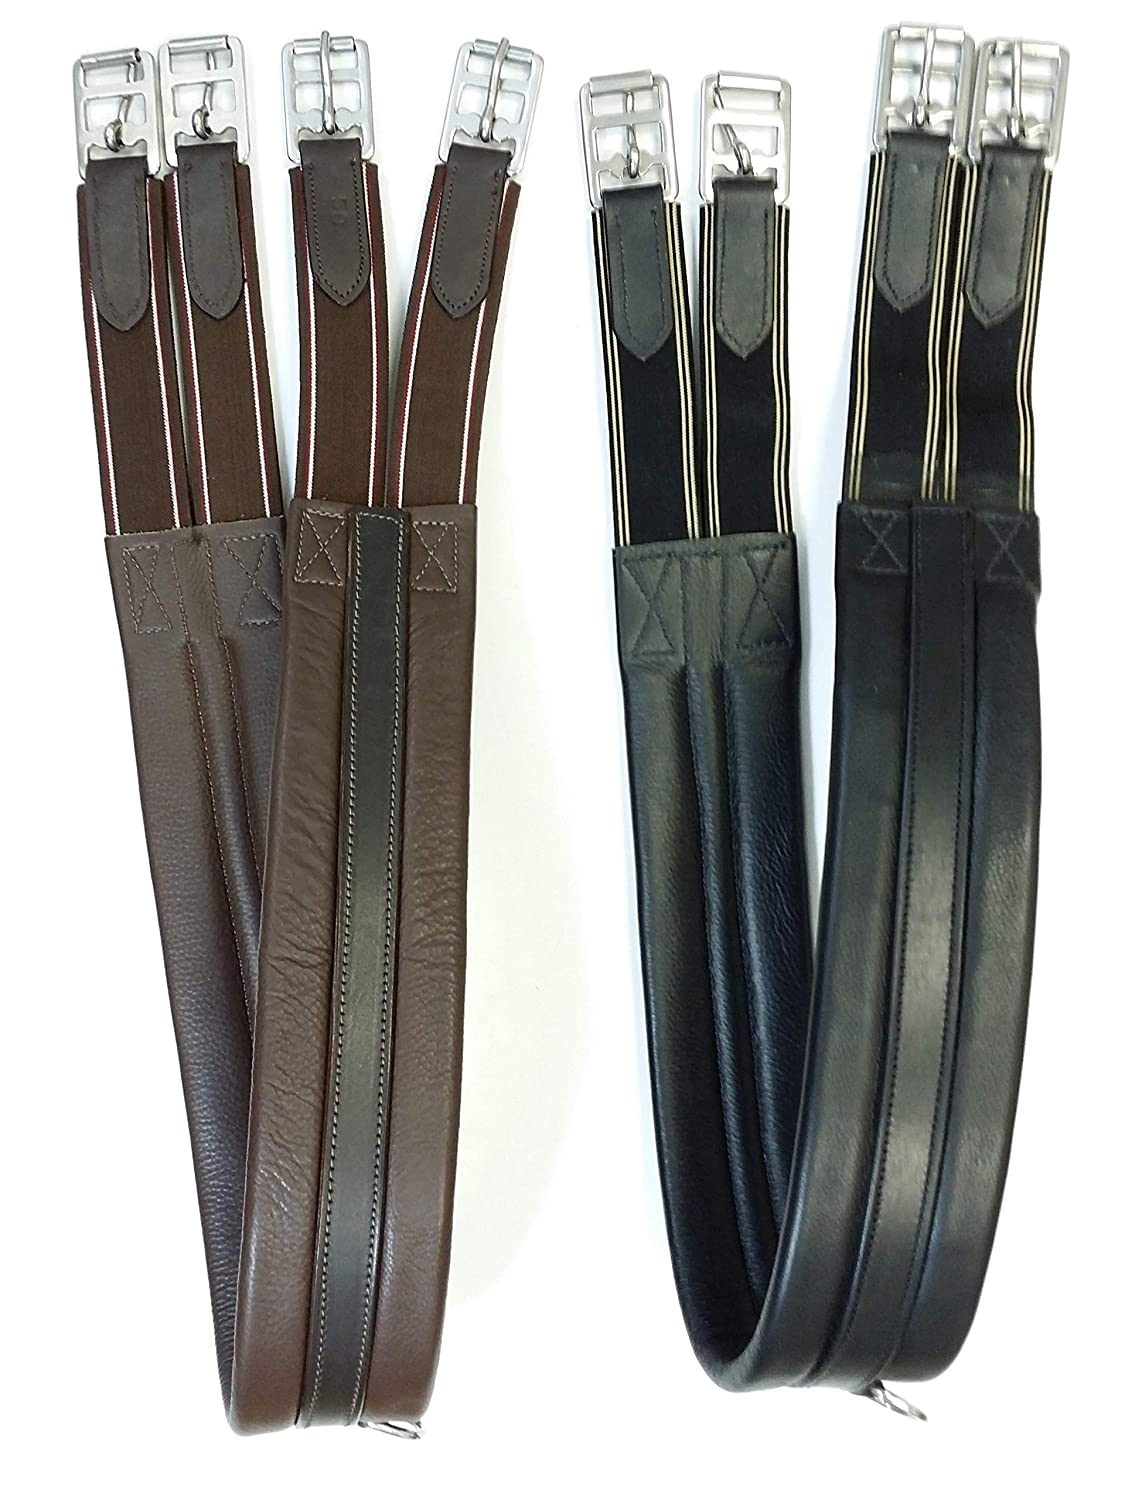 Both End Elasticated A/&S Eq Leather Girths for Horse Cob Pony in Black//Brown 58//147.3 cm, Brown Regular Padded